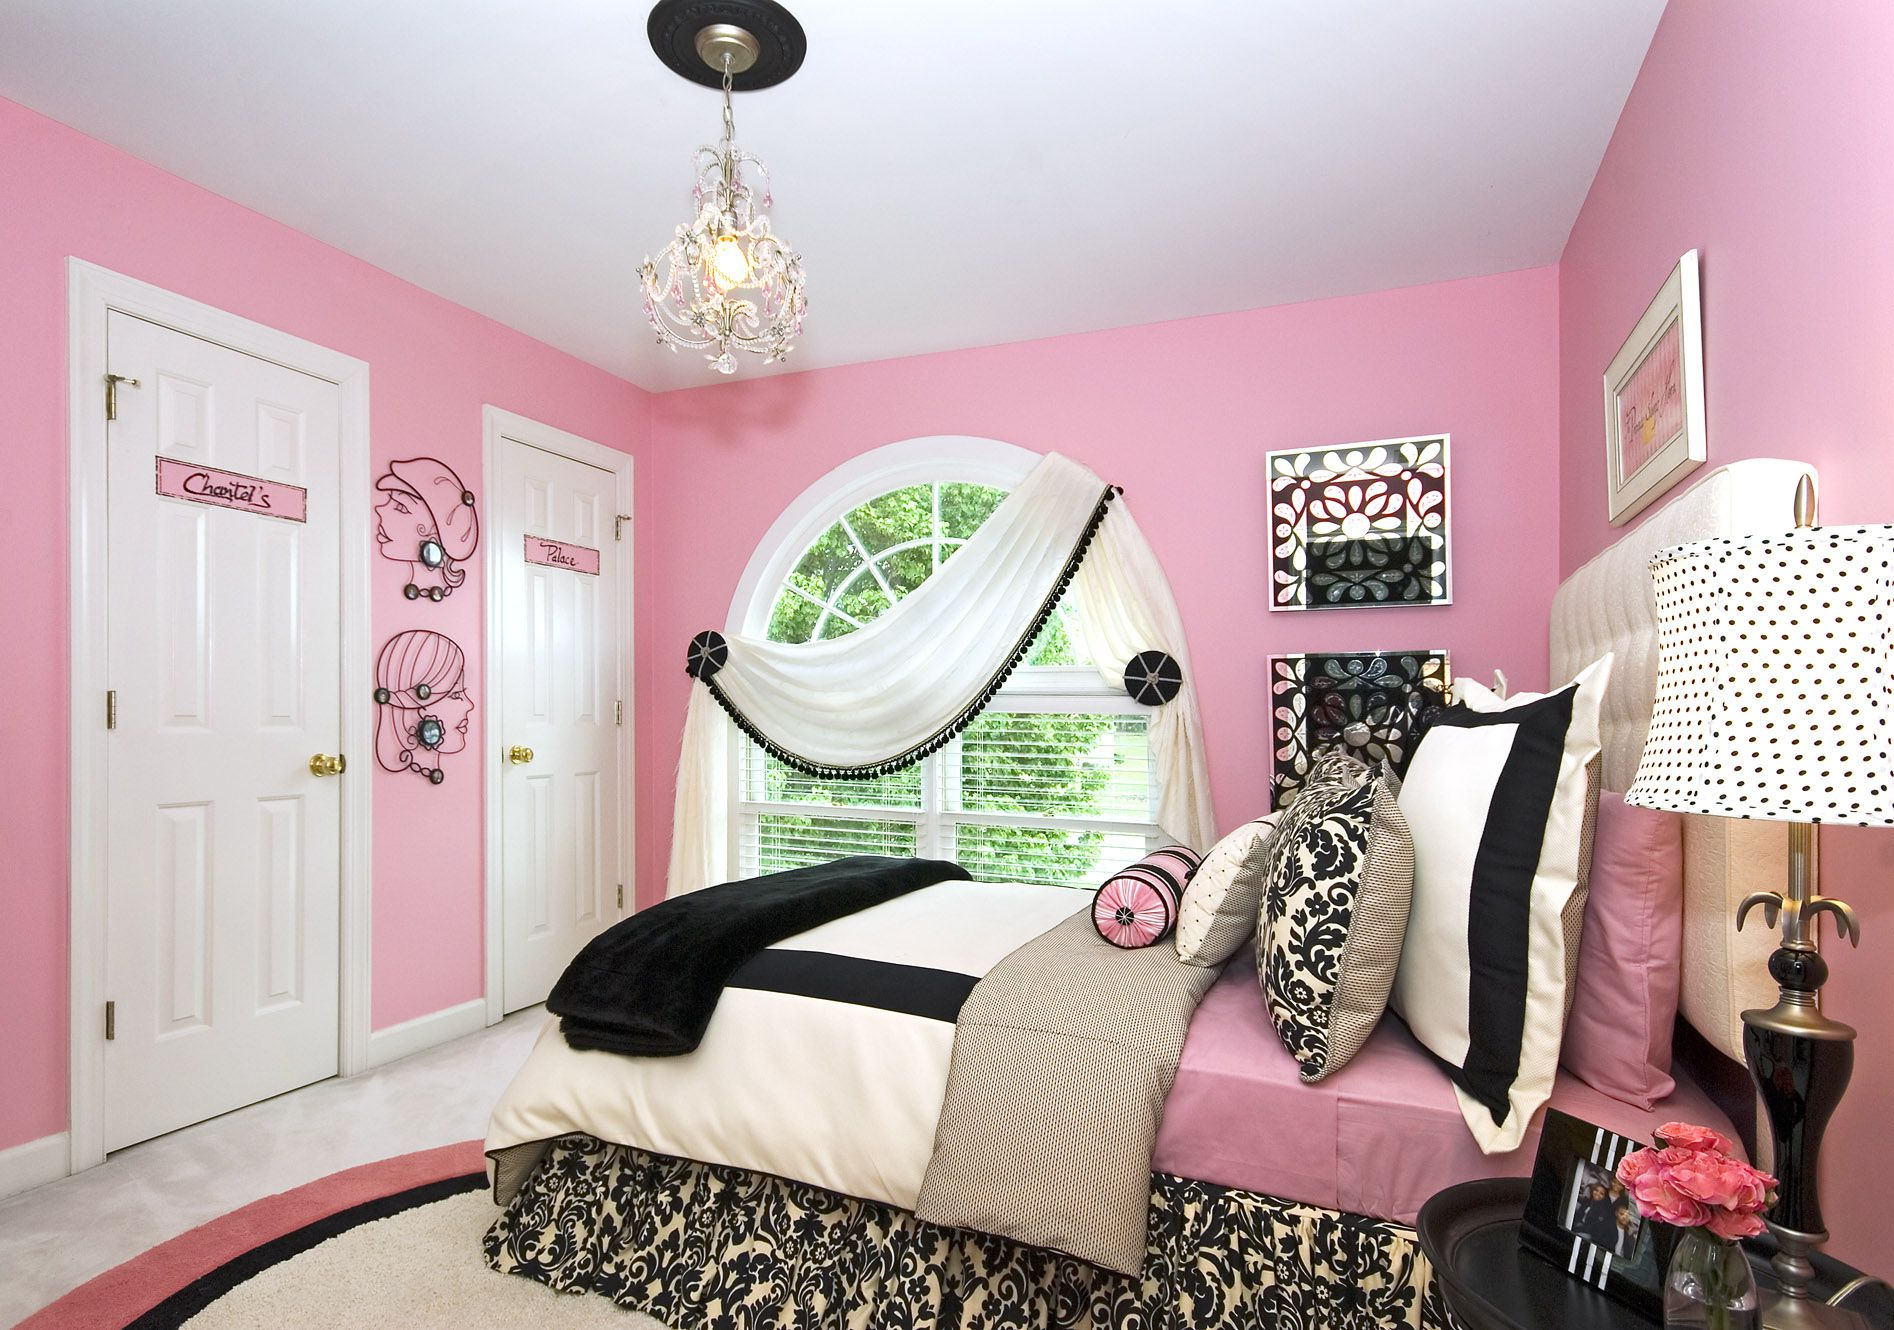 If When I Ever Have A Girl This Is Exactly The Room I Want For Her Vintage Barbie Okay Maybe More For Barbie Bedroom Pink Black Girls Room Girls Room Design